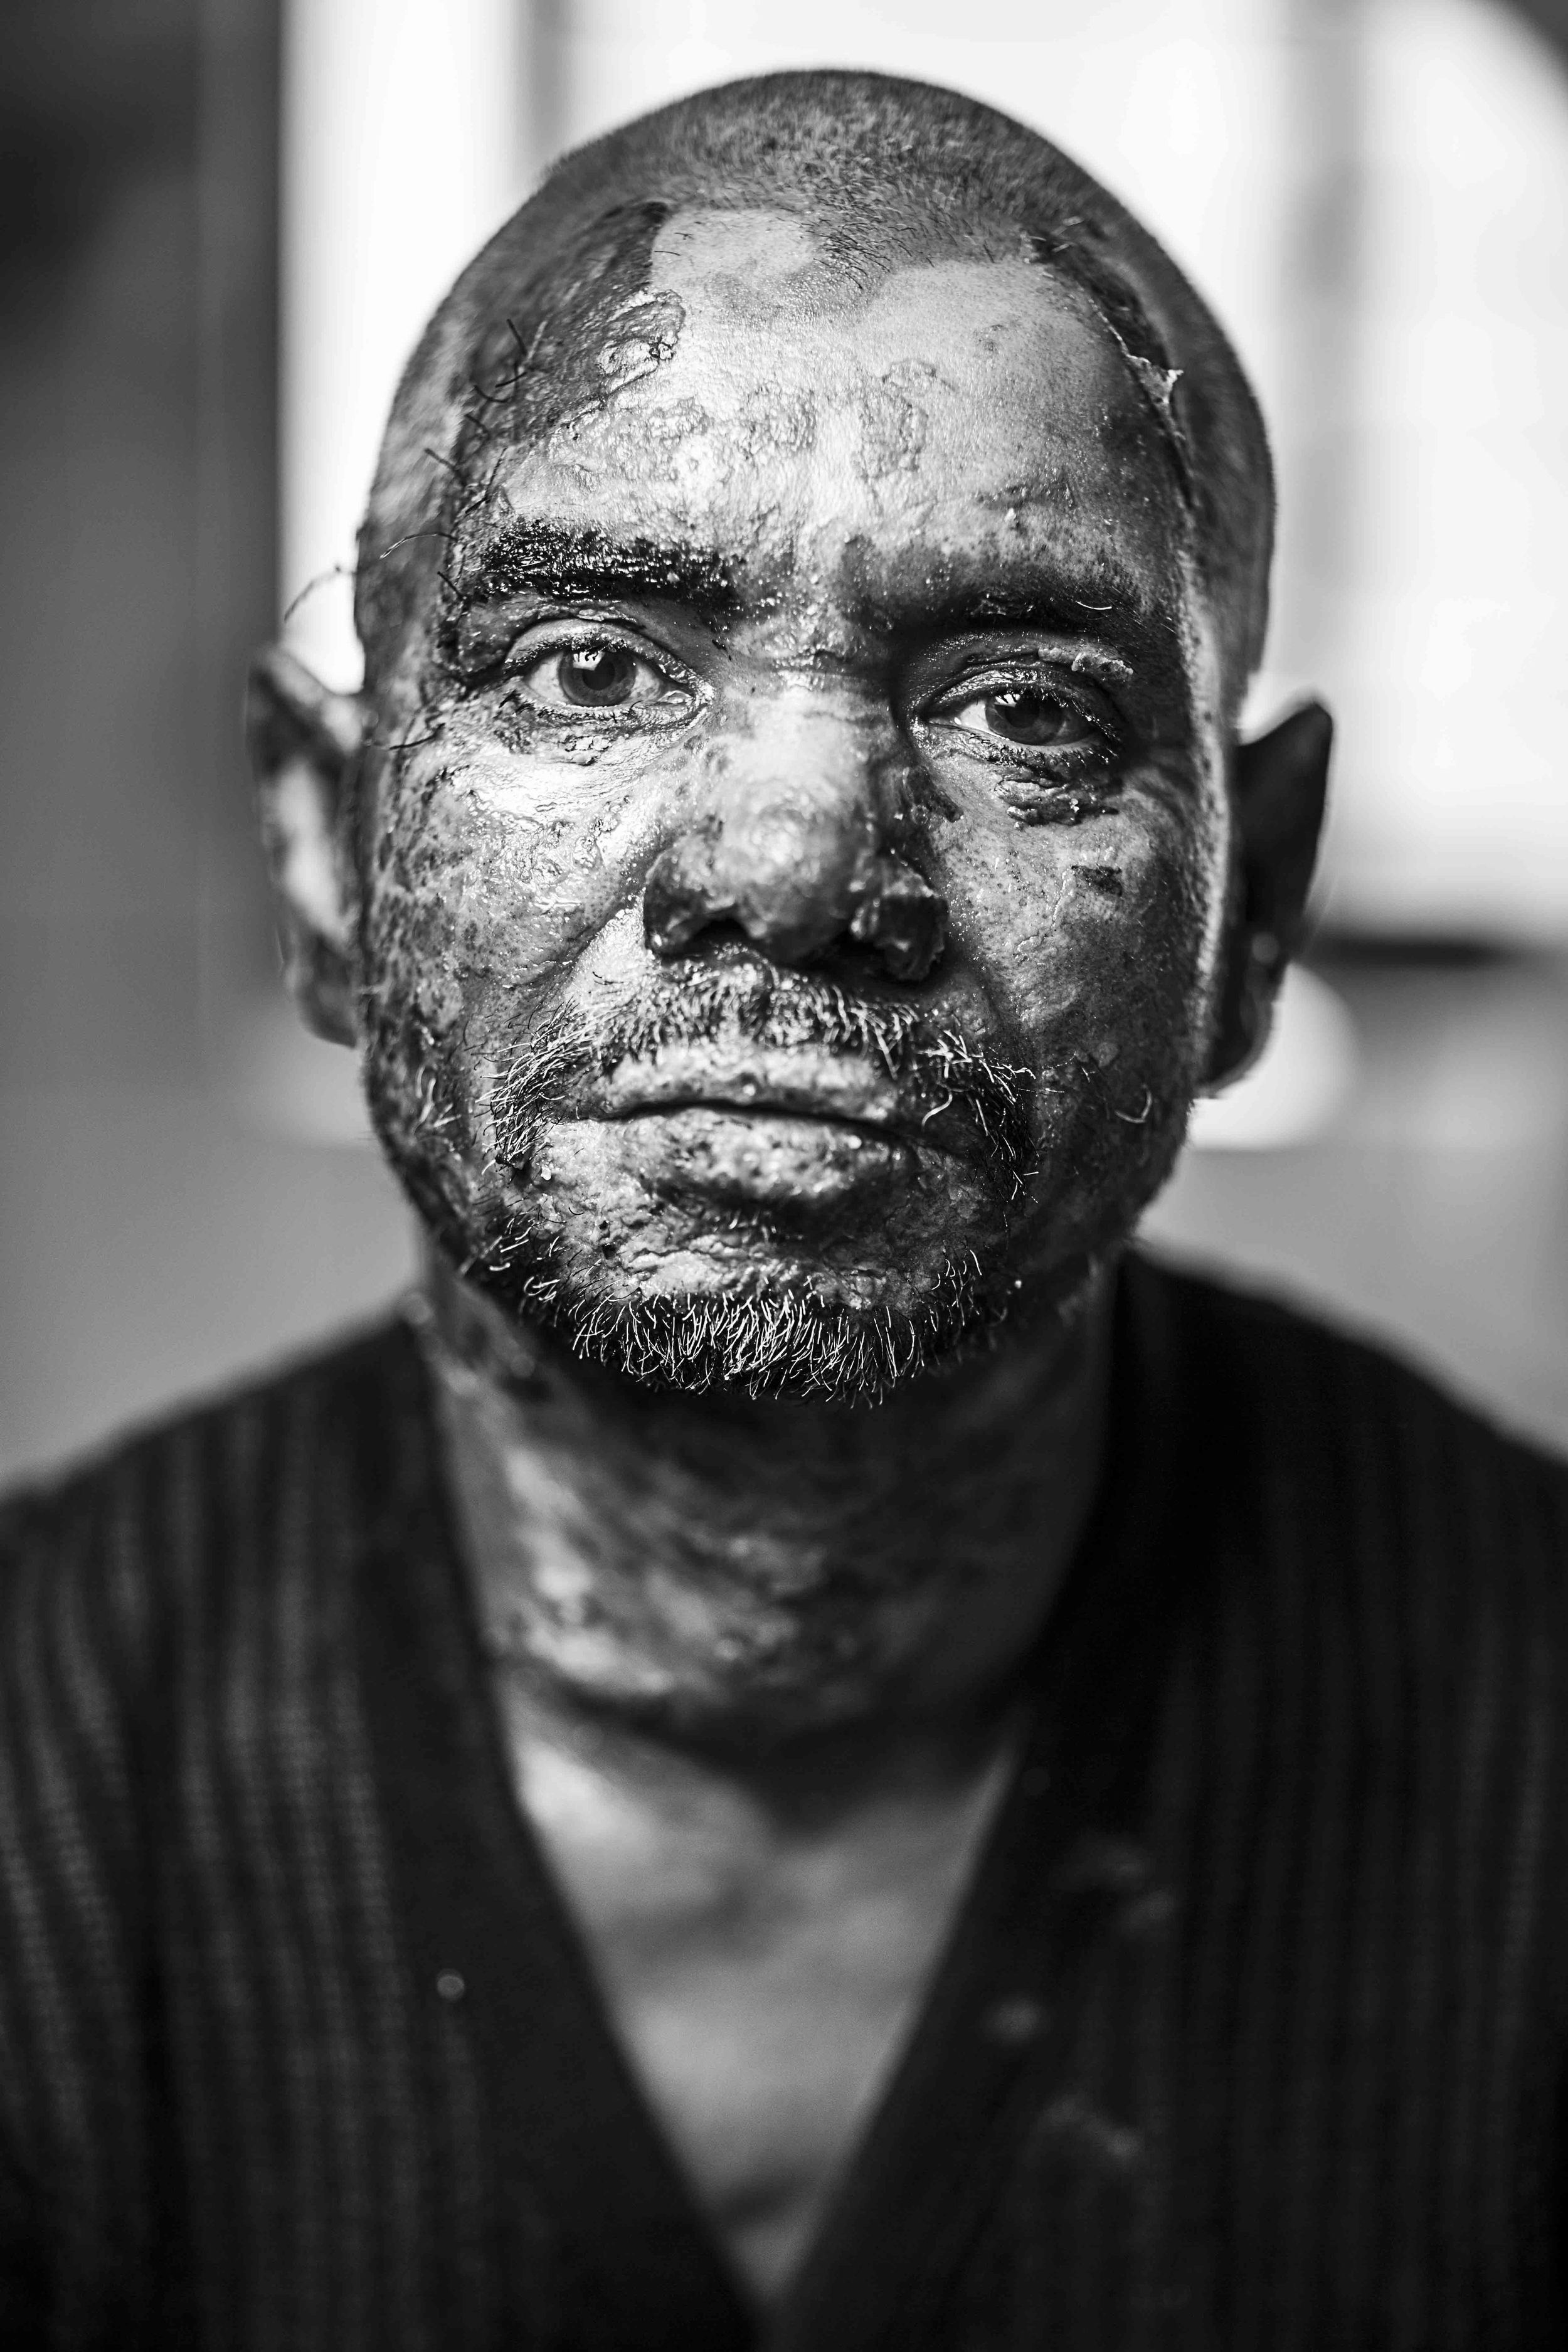 Lokman, 45 years old, a vegetable trader from Gazipur, received burns to 11% of his body, when miscreants threw a petrol bomb onto a truck he was travelling on he was admitted to Dhaka Medical College Hospital (DMCH) on the 2/1/2014.